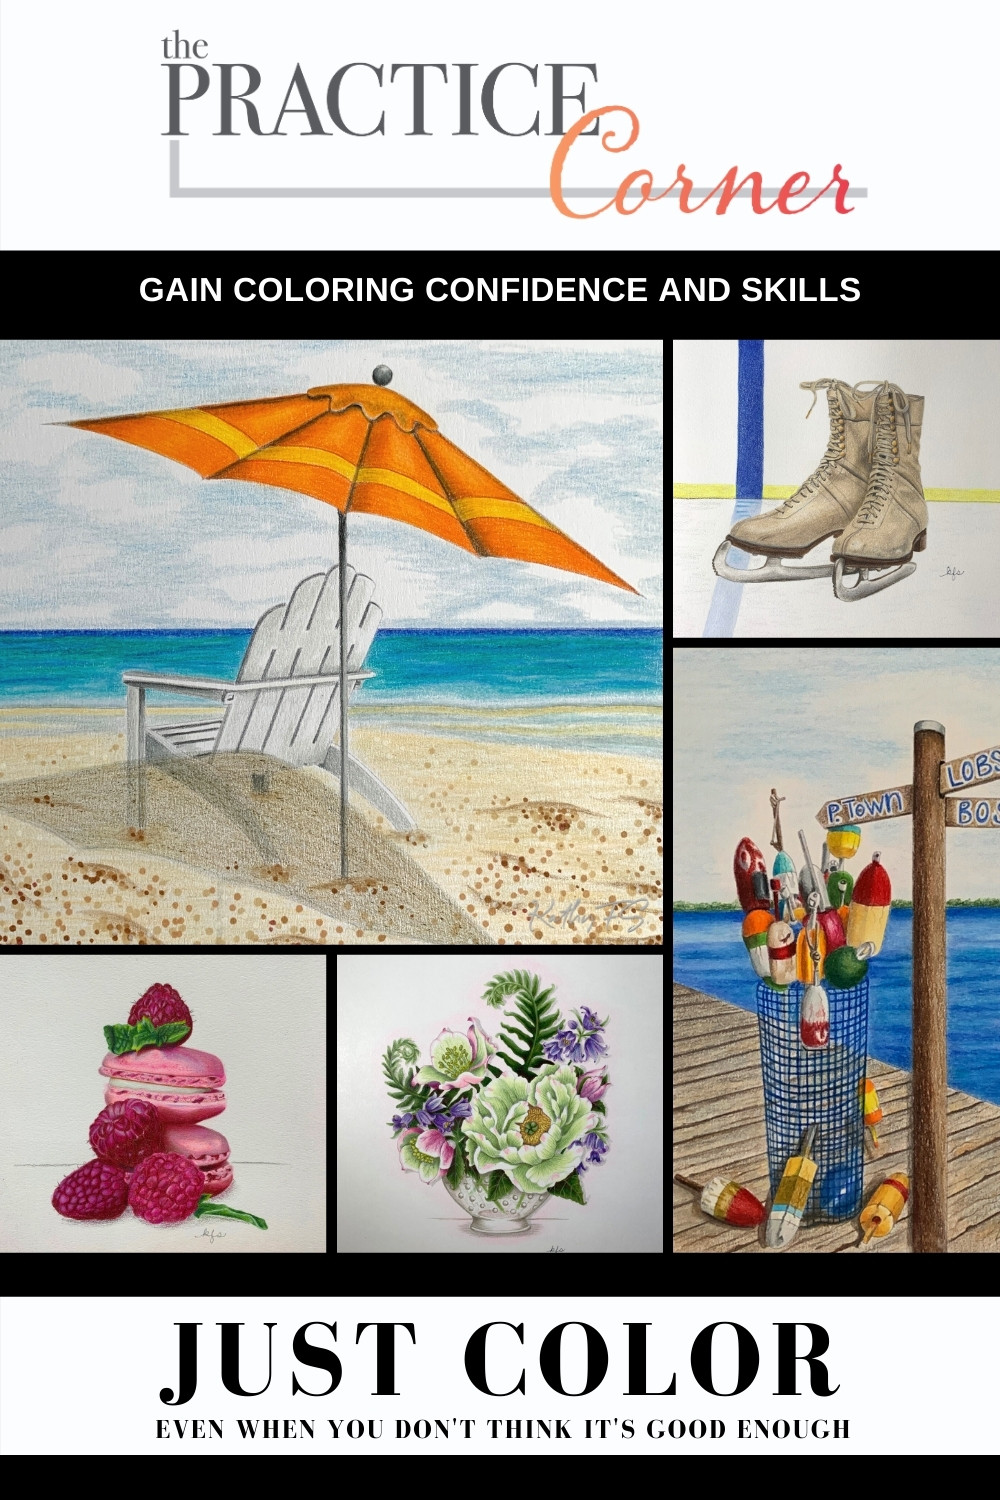 Improve your coloring by experimenting and practice | Don't stop coloring because it's not perfect | #coloredpencil #coloredpencilpractice #copicmarker #copicmarkerpractice  #thepracticecorner